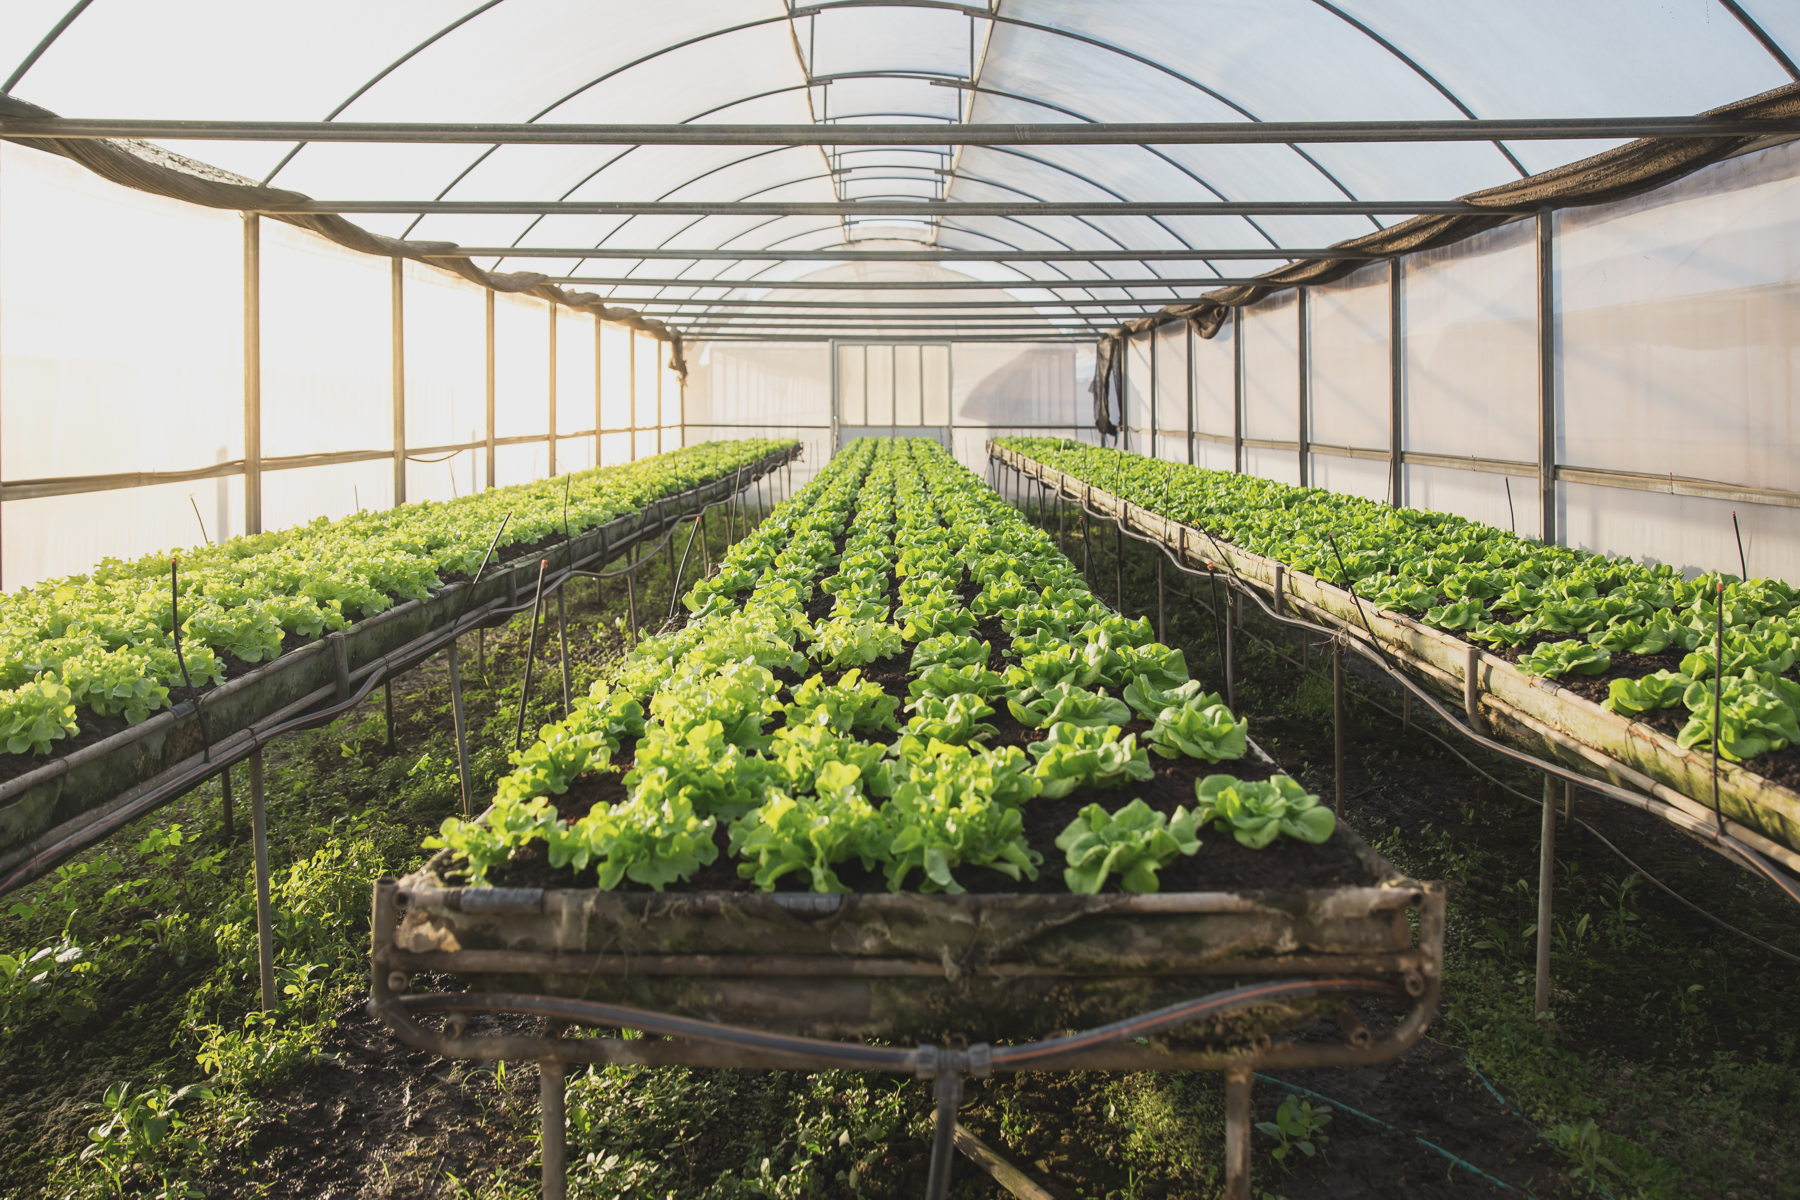 CLEAN FARM PREMIUM VEGETABLE FARM